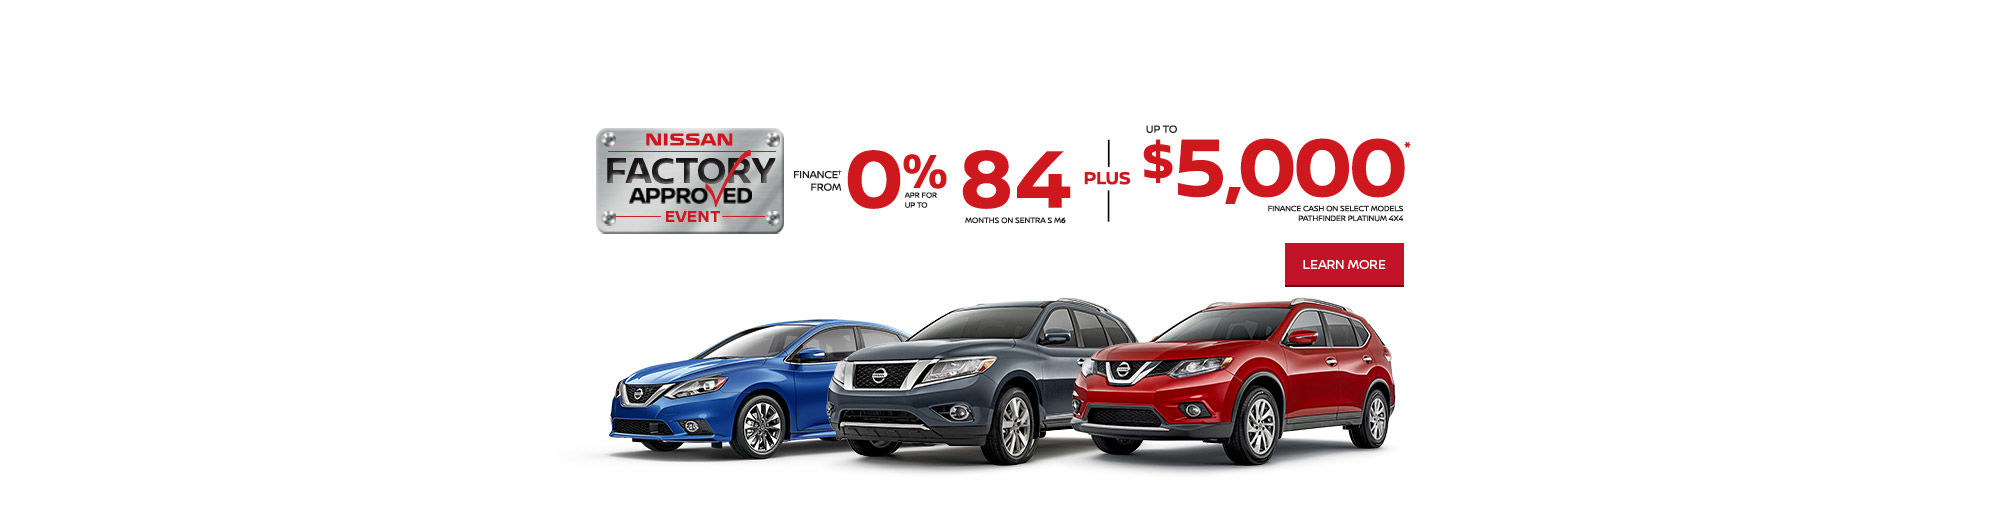 Nissan Factory Approved Event